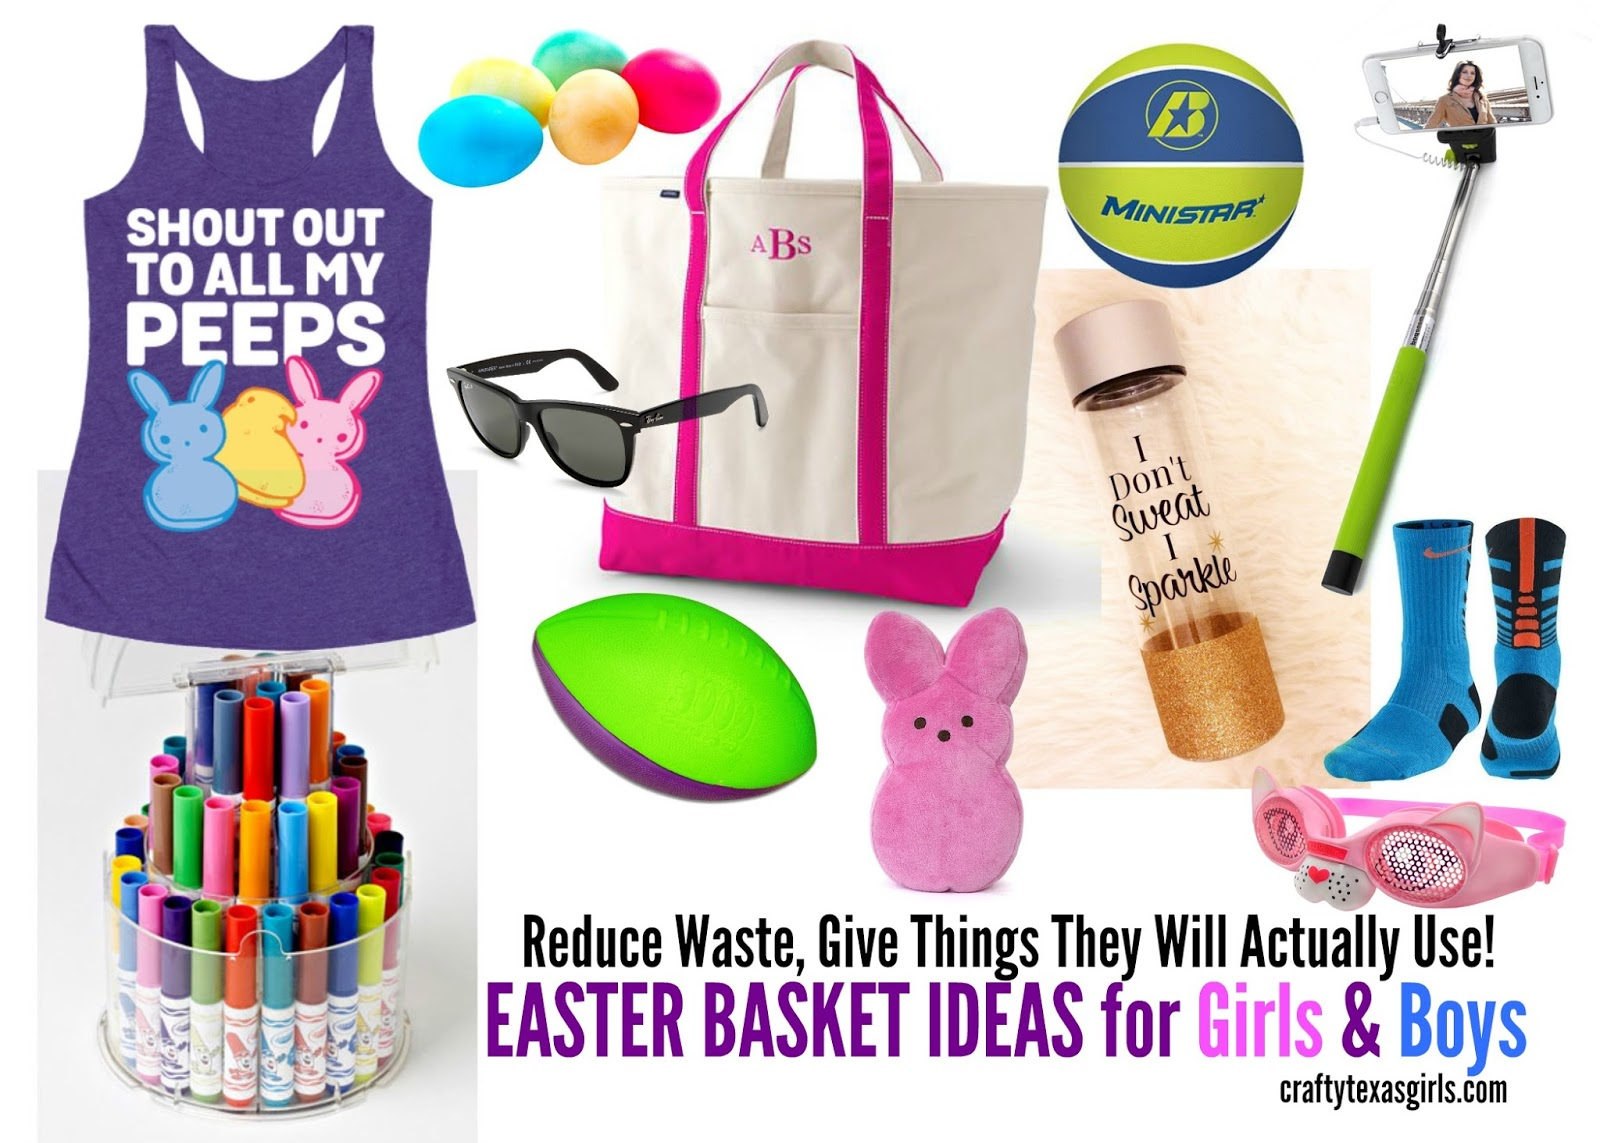 Crafty texas girls easter basket ideas for girls boys reusable to get started choose a basket that you can use again and again i like a natural wood or woven basket one that i can use for storing toys throw blankets negle Image collections